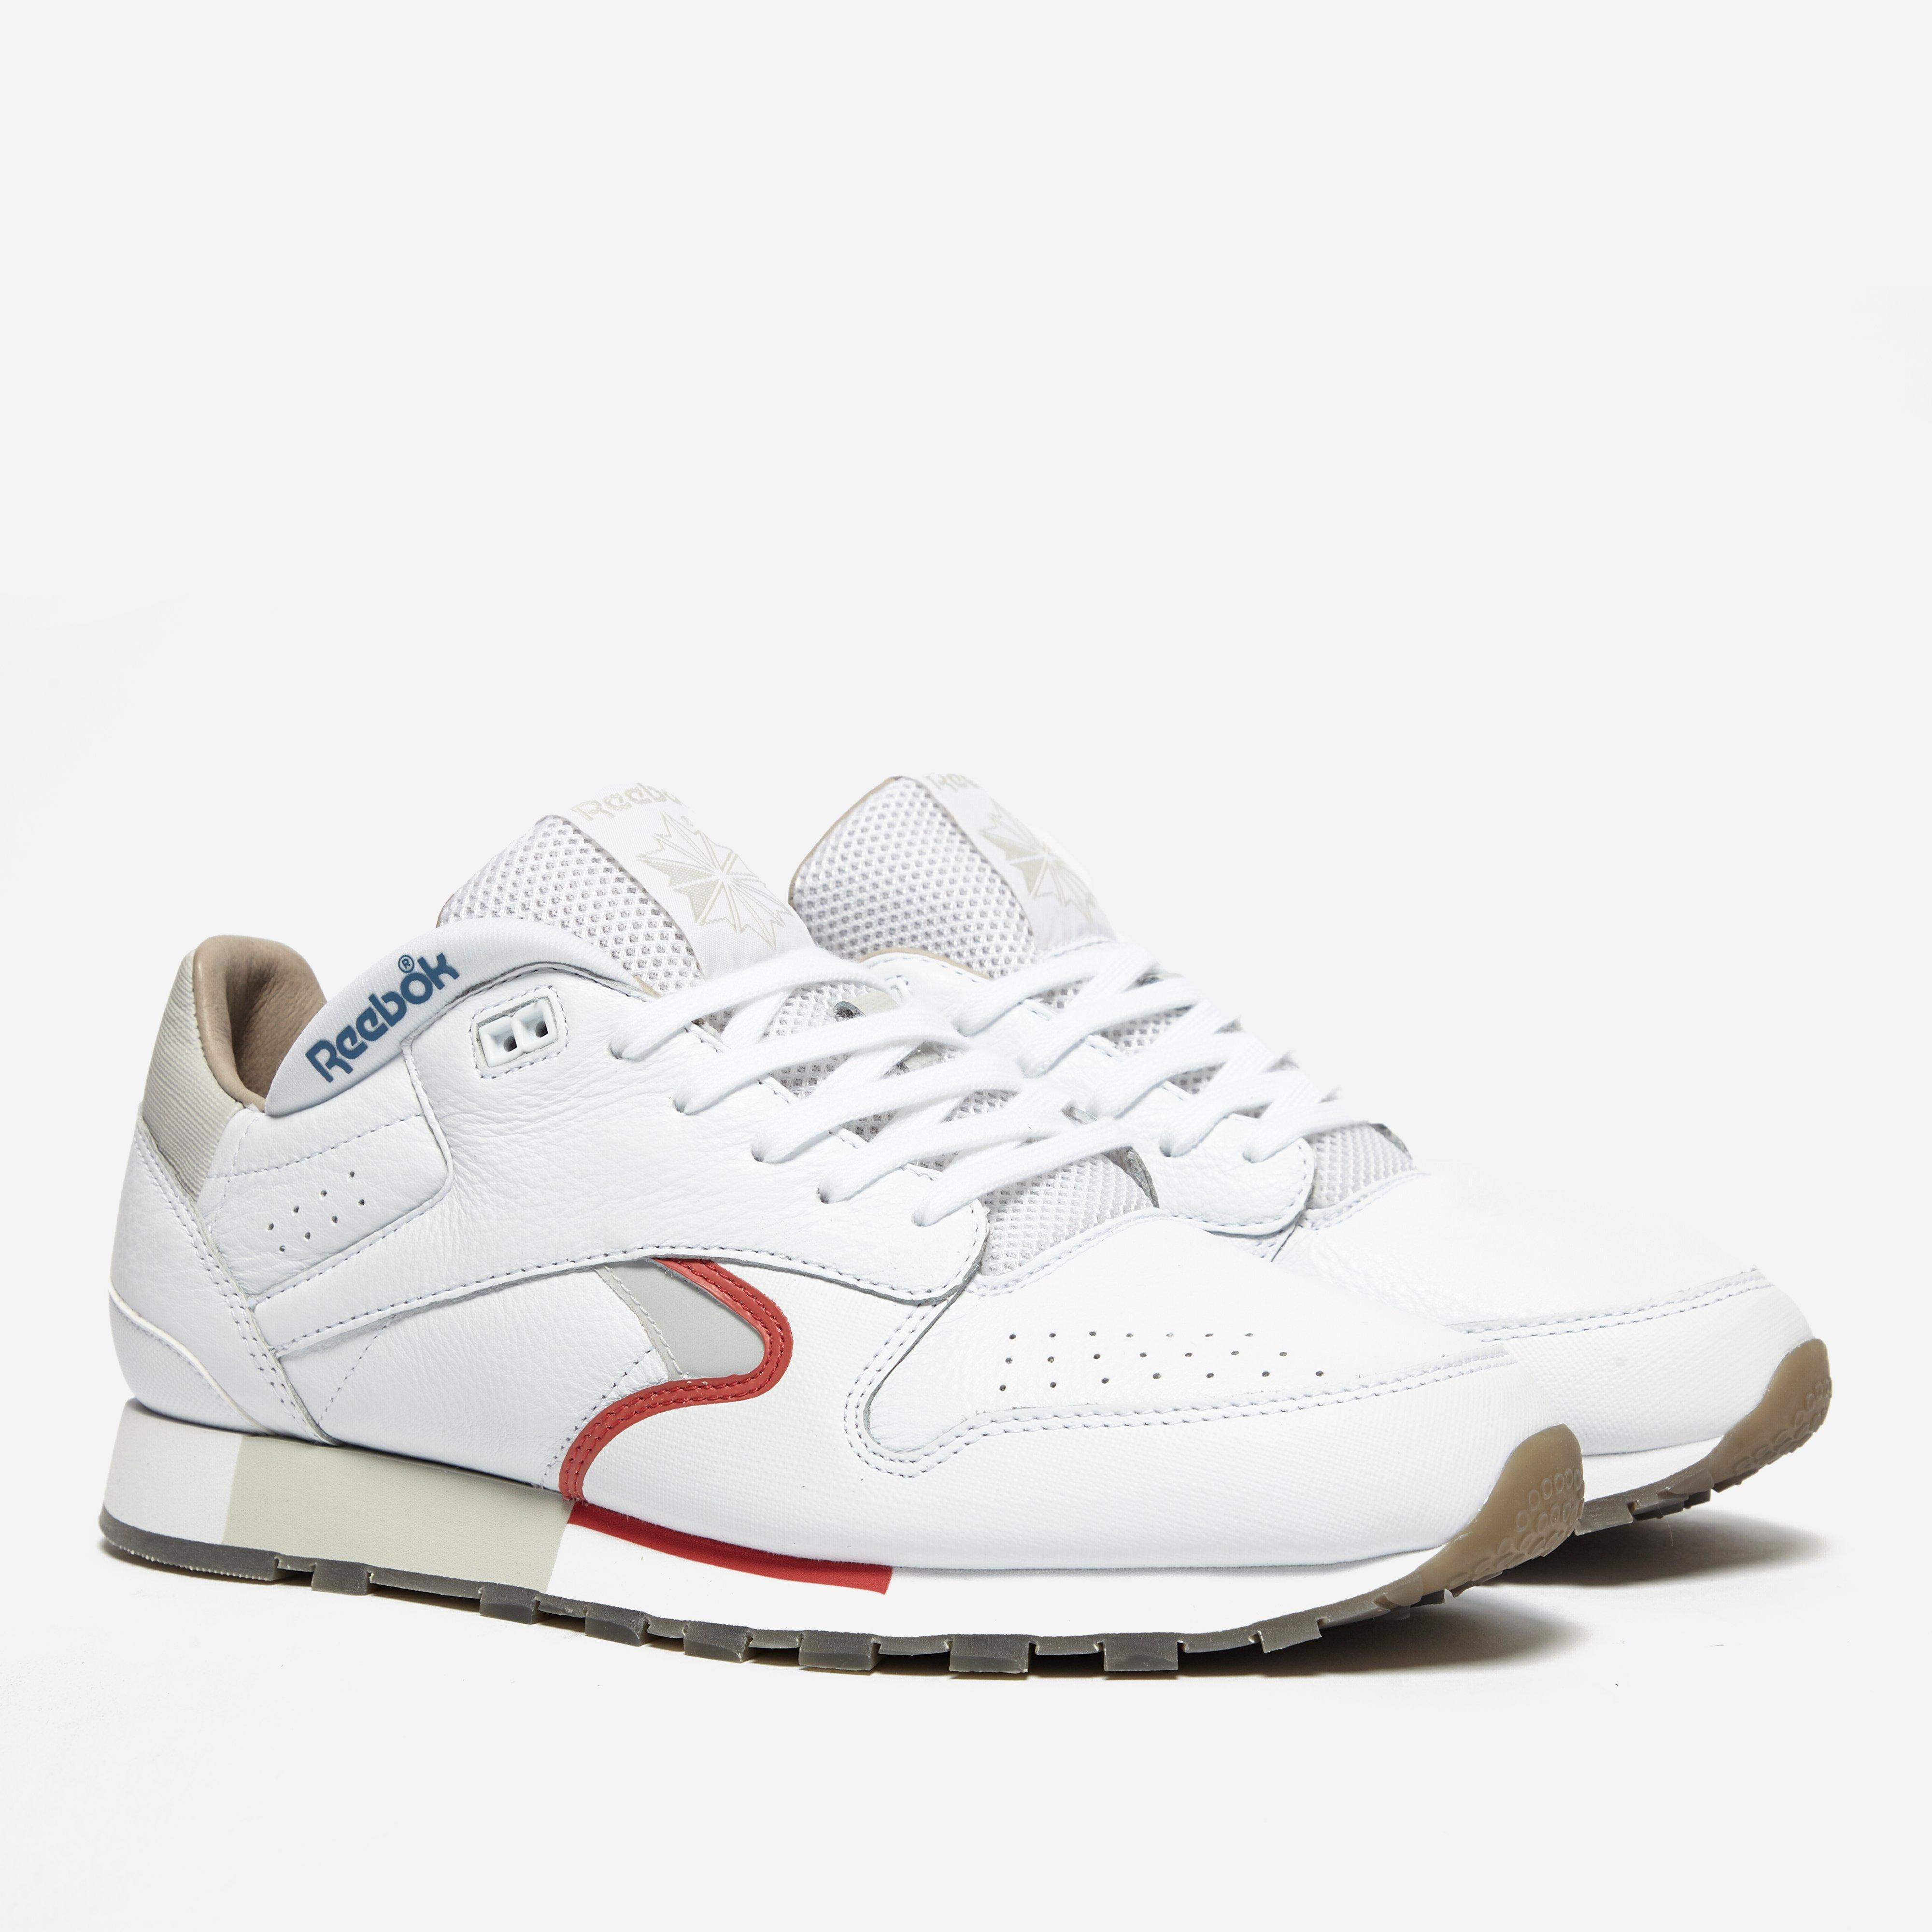 Very Cheap For Sale Mens Classic Leather Archive Low-Top Sneakers Reebok Classic Cheap Online Cheap Sale Best Store To Get Tefw4